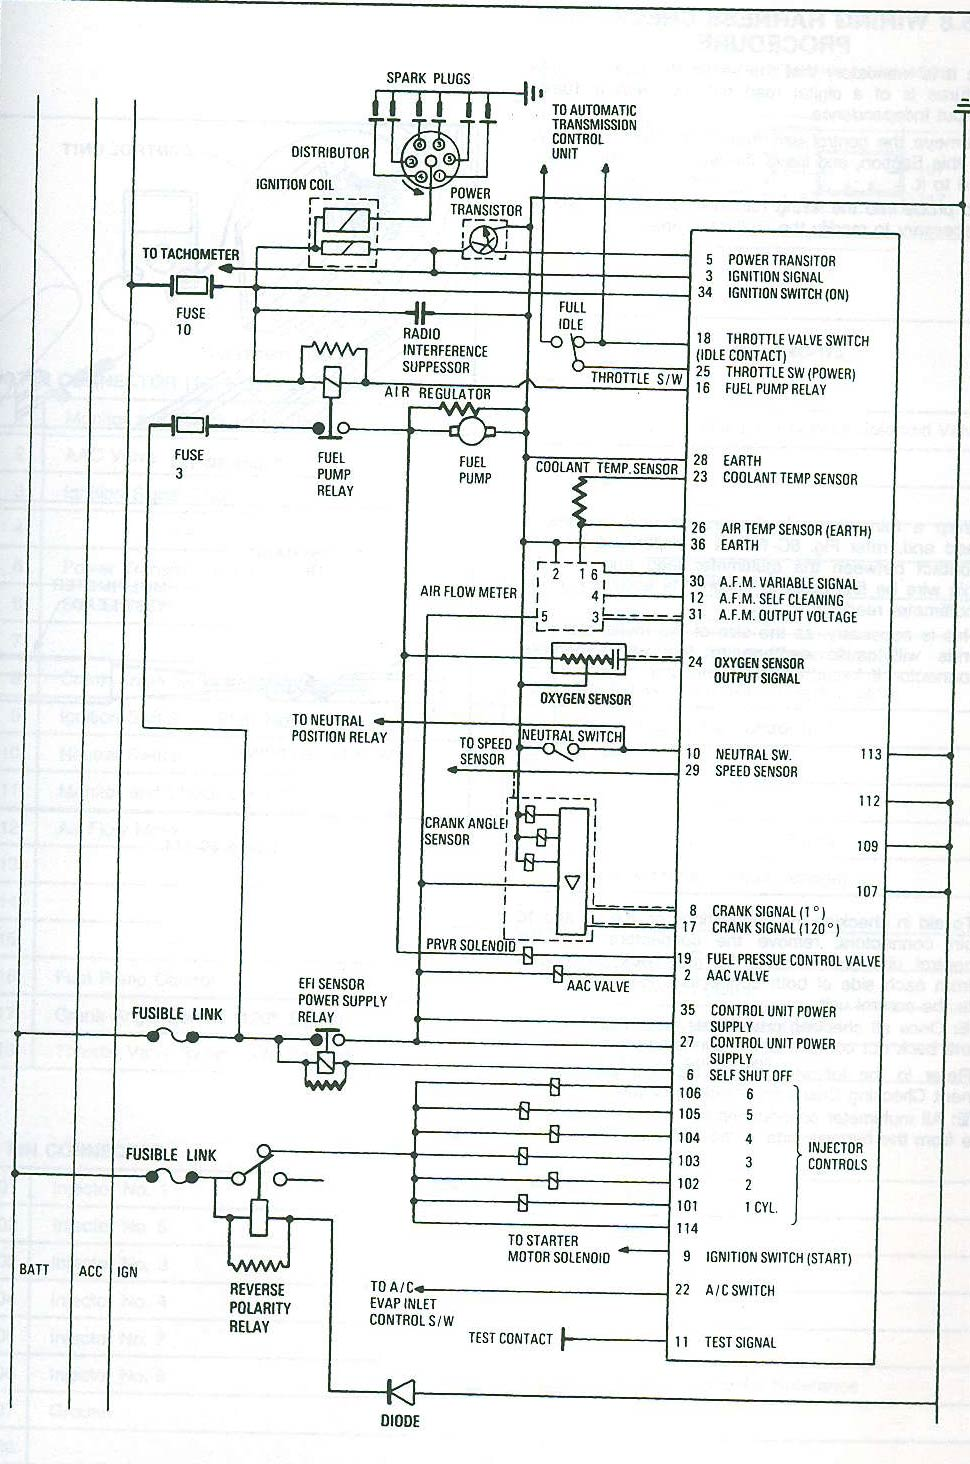 vn 750 wiring diagram vn commodore wiring diagram - somurich.com vn commodore wiring diagram